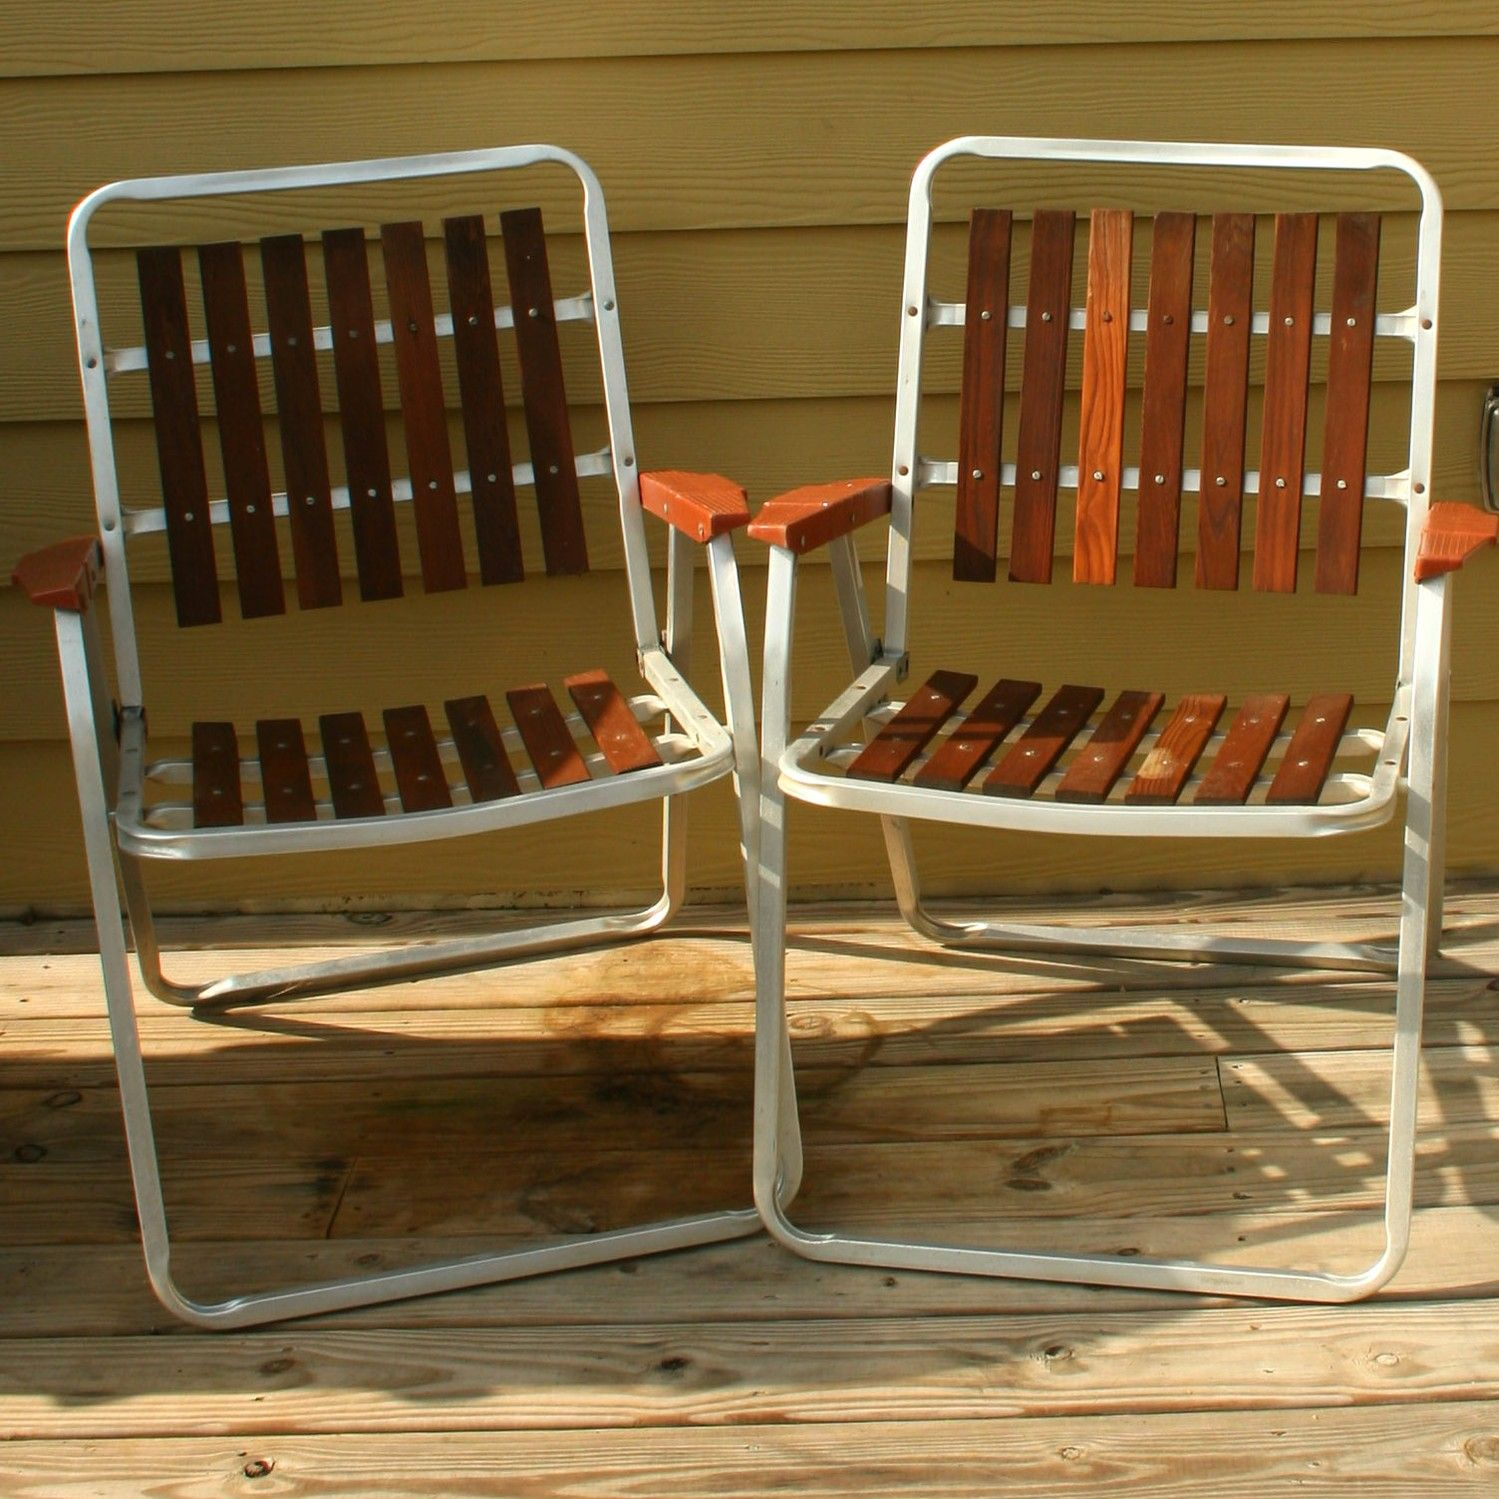 Vintage Folding Lawn Chairs Mid Century Modern Wooden Slats